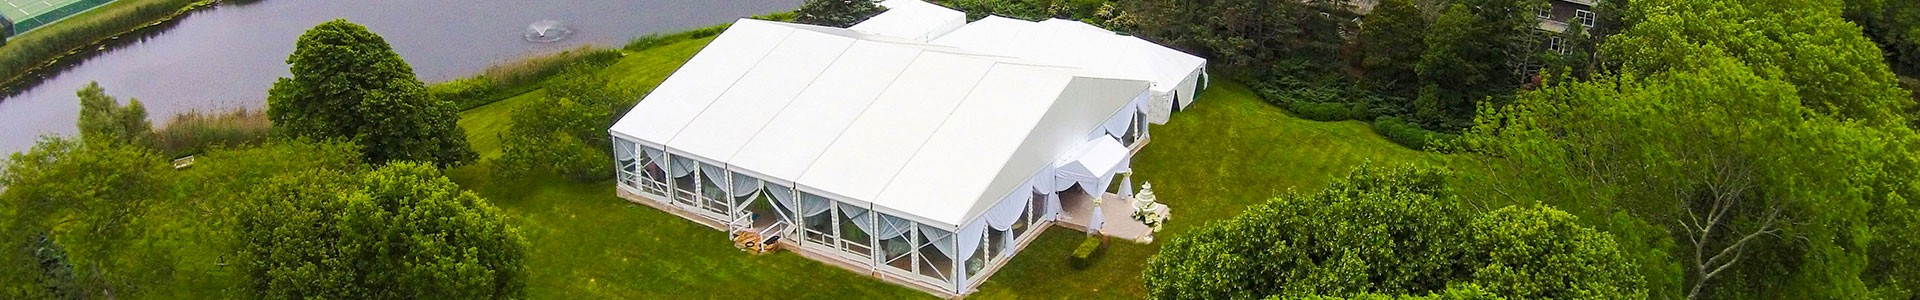 Clearspan Structure Tent Aerial